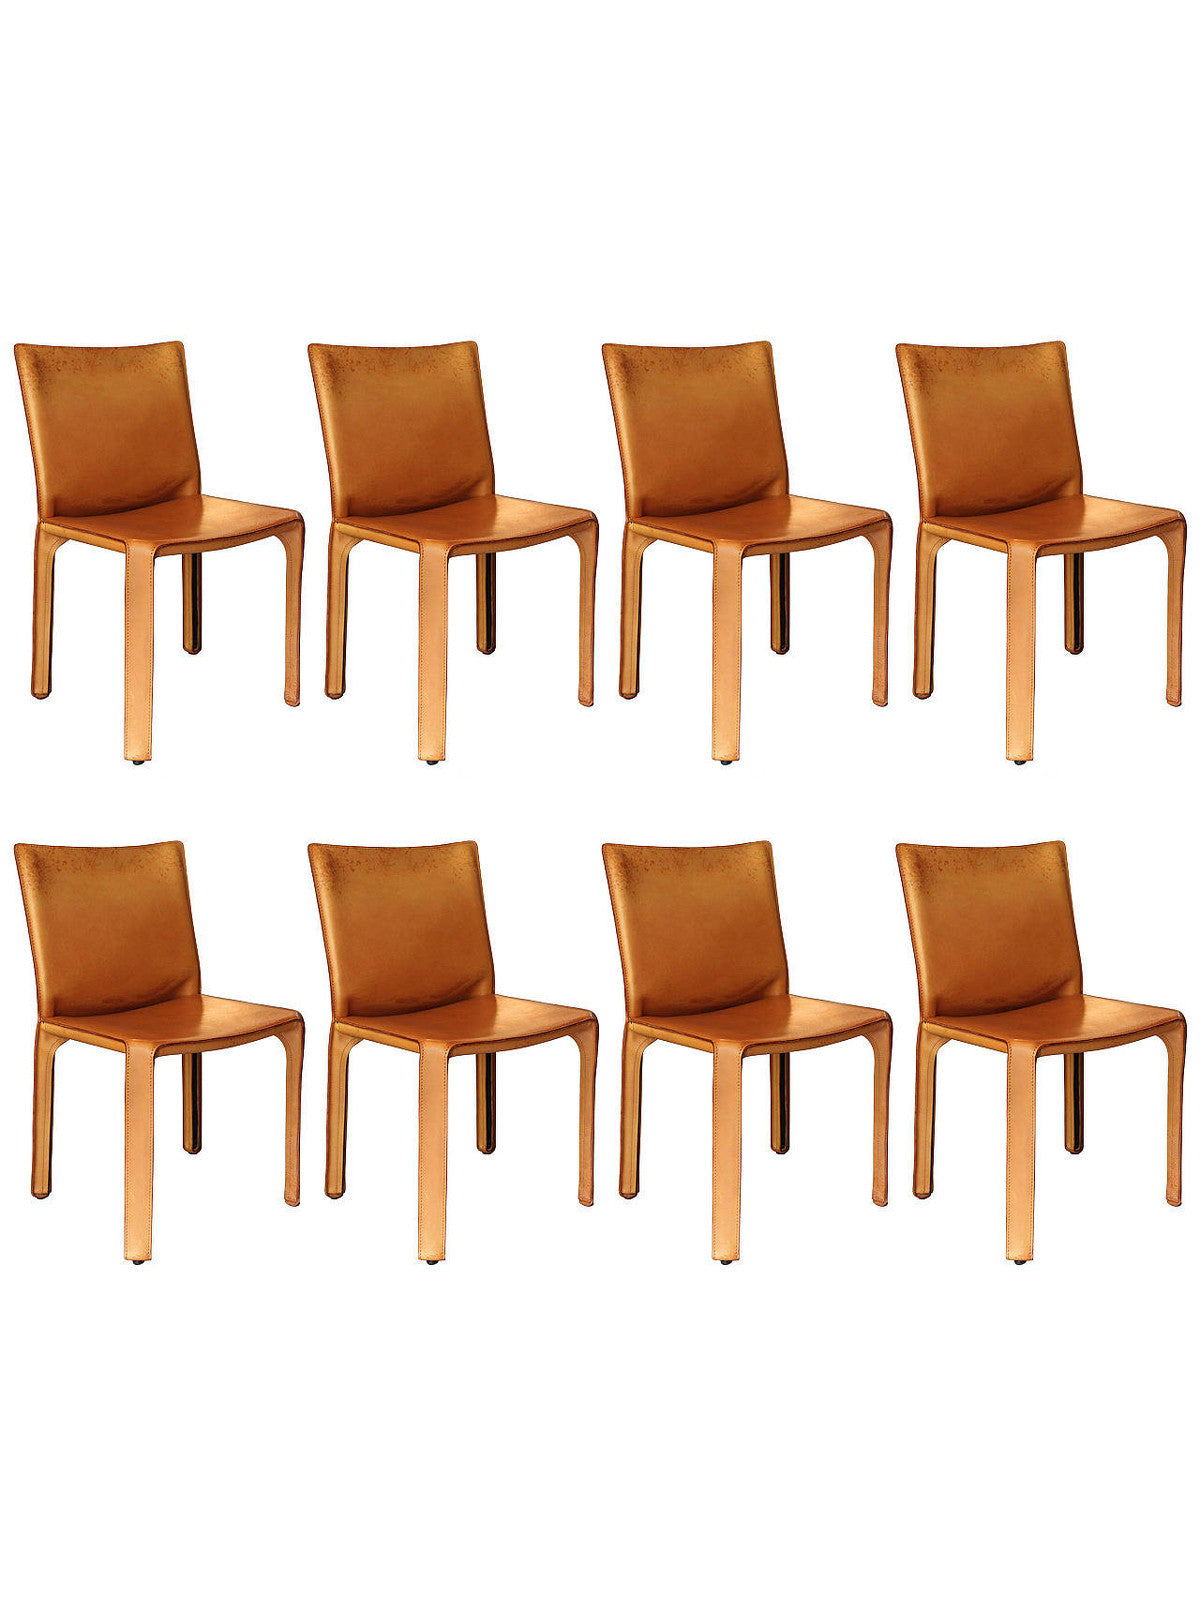 Cab Chairs by Mario Bellini for Cassina Set of 8 – The Edit